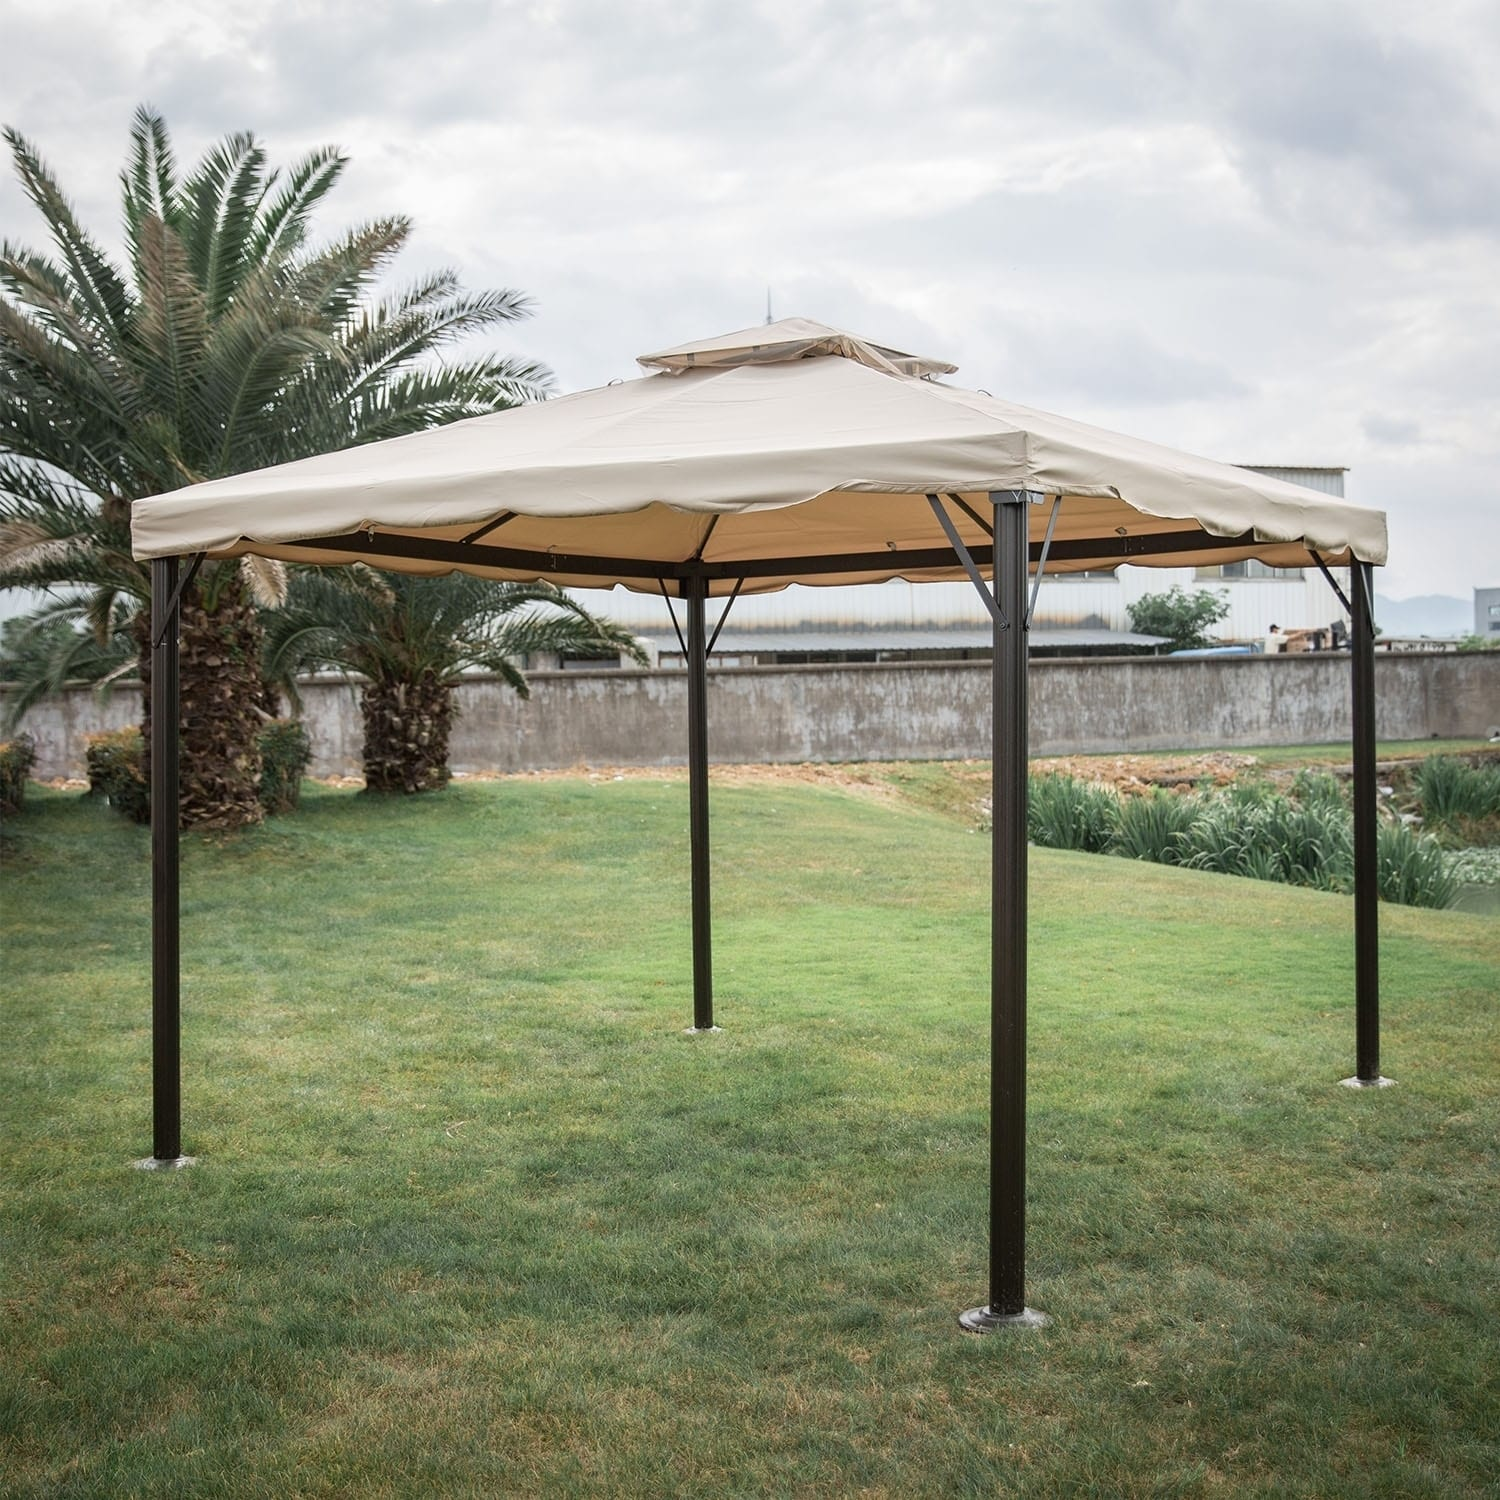 Kinbor Outdoor Gazebo Patio